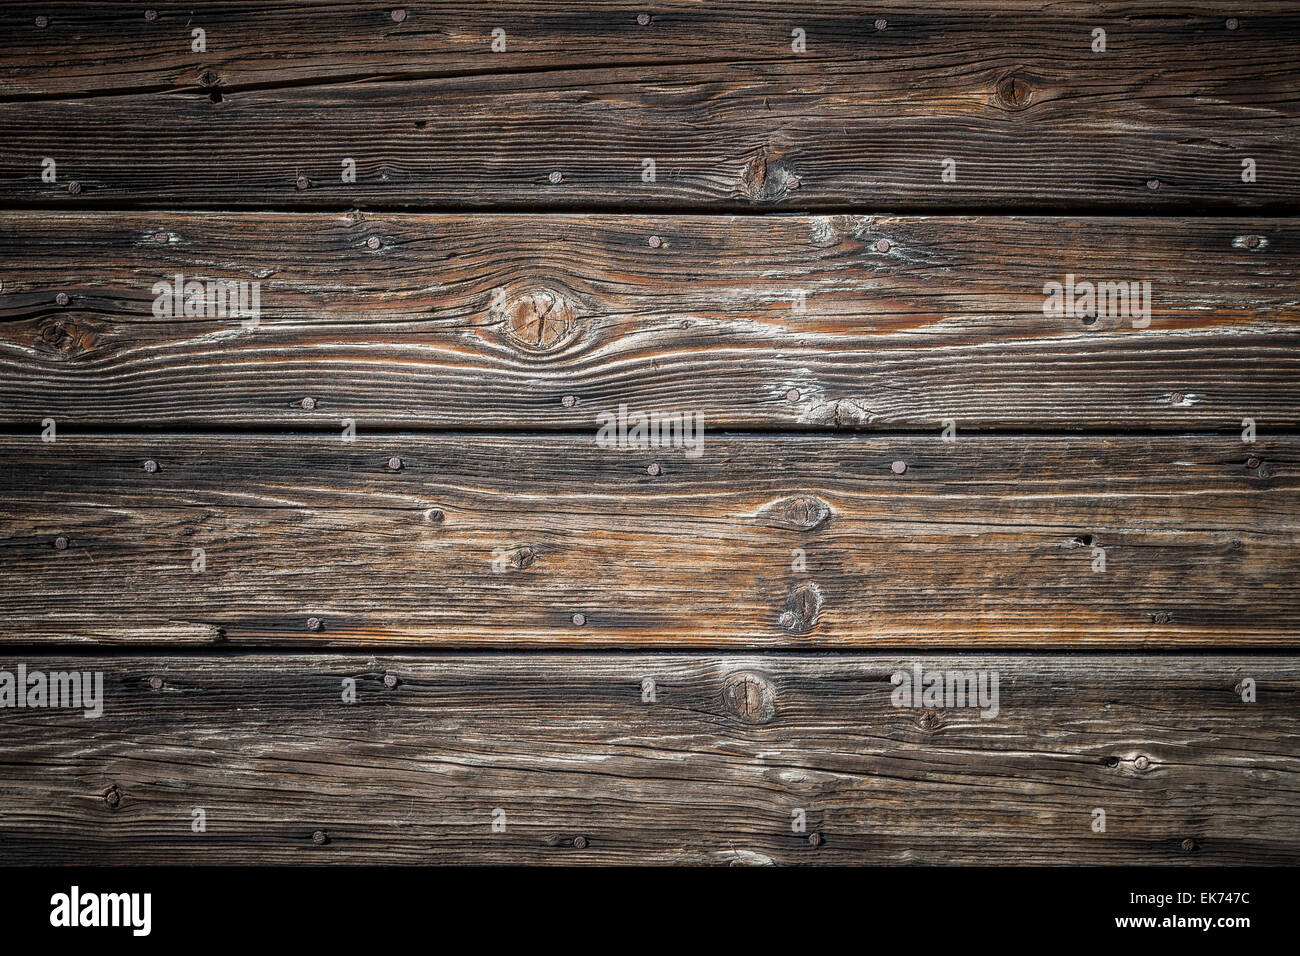 Wood background with brown tones and black parts. Stock Photo